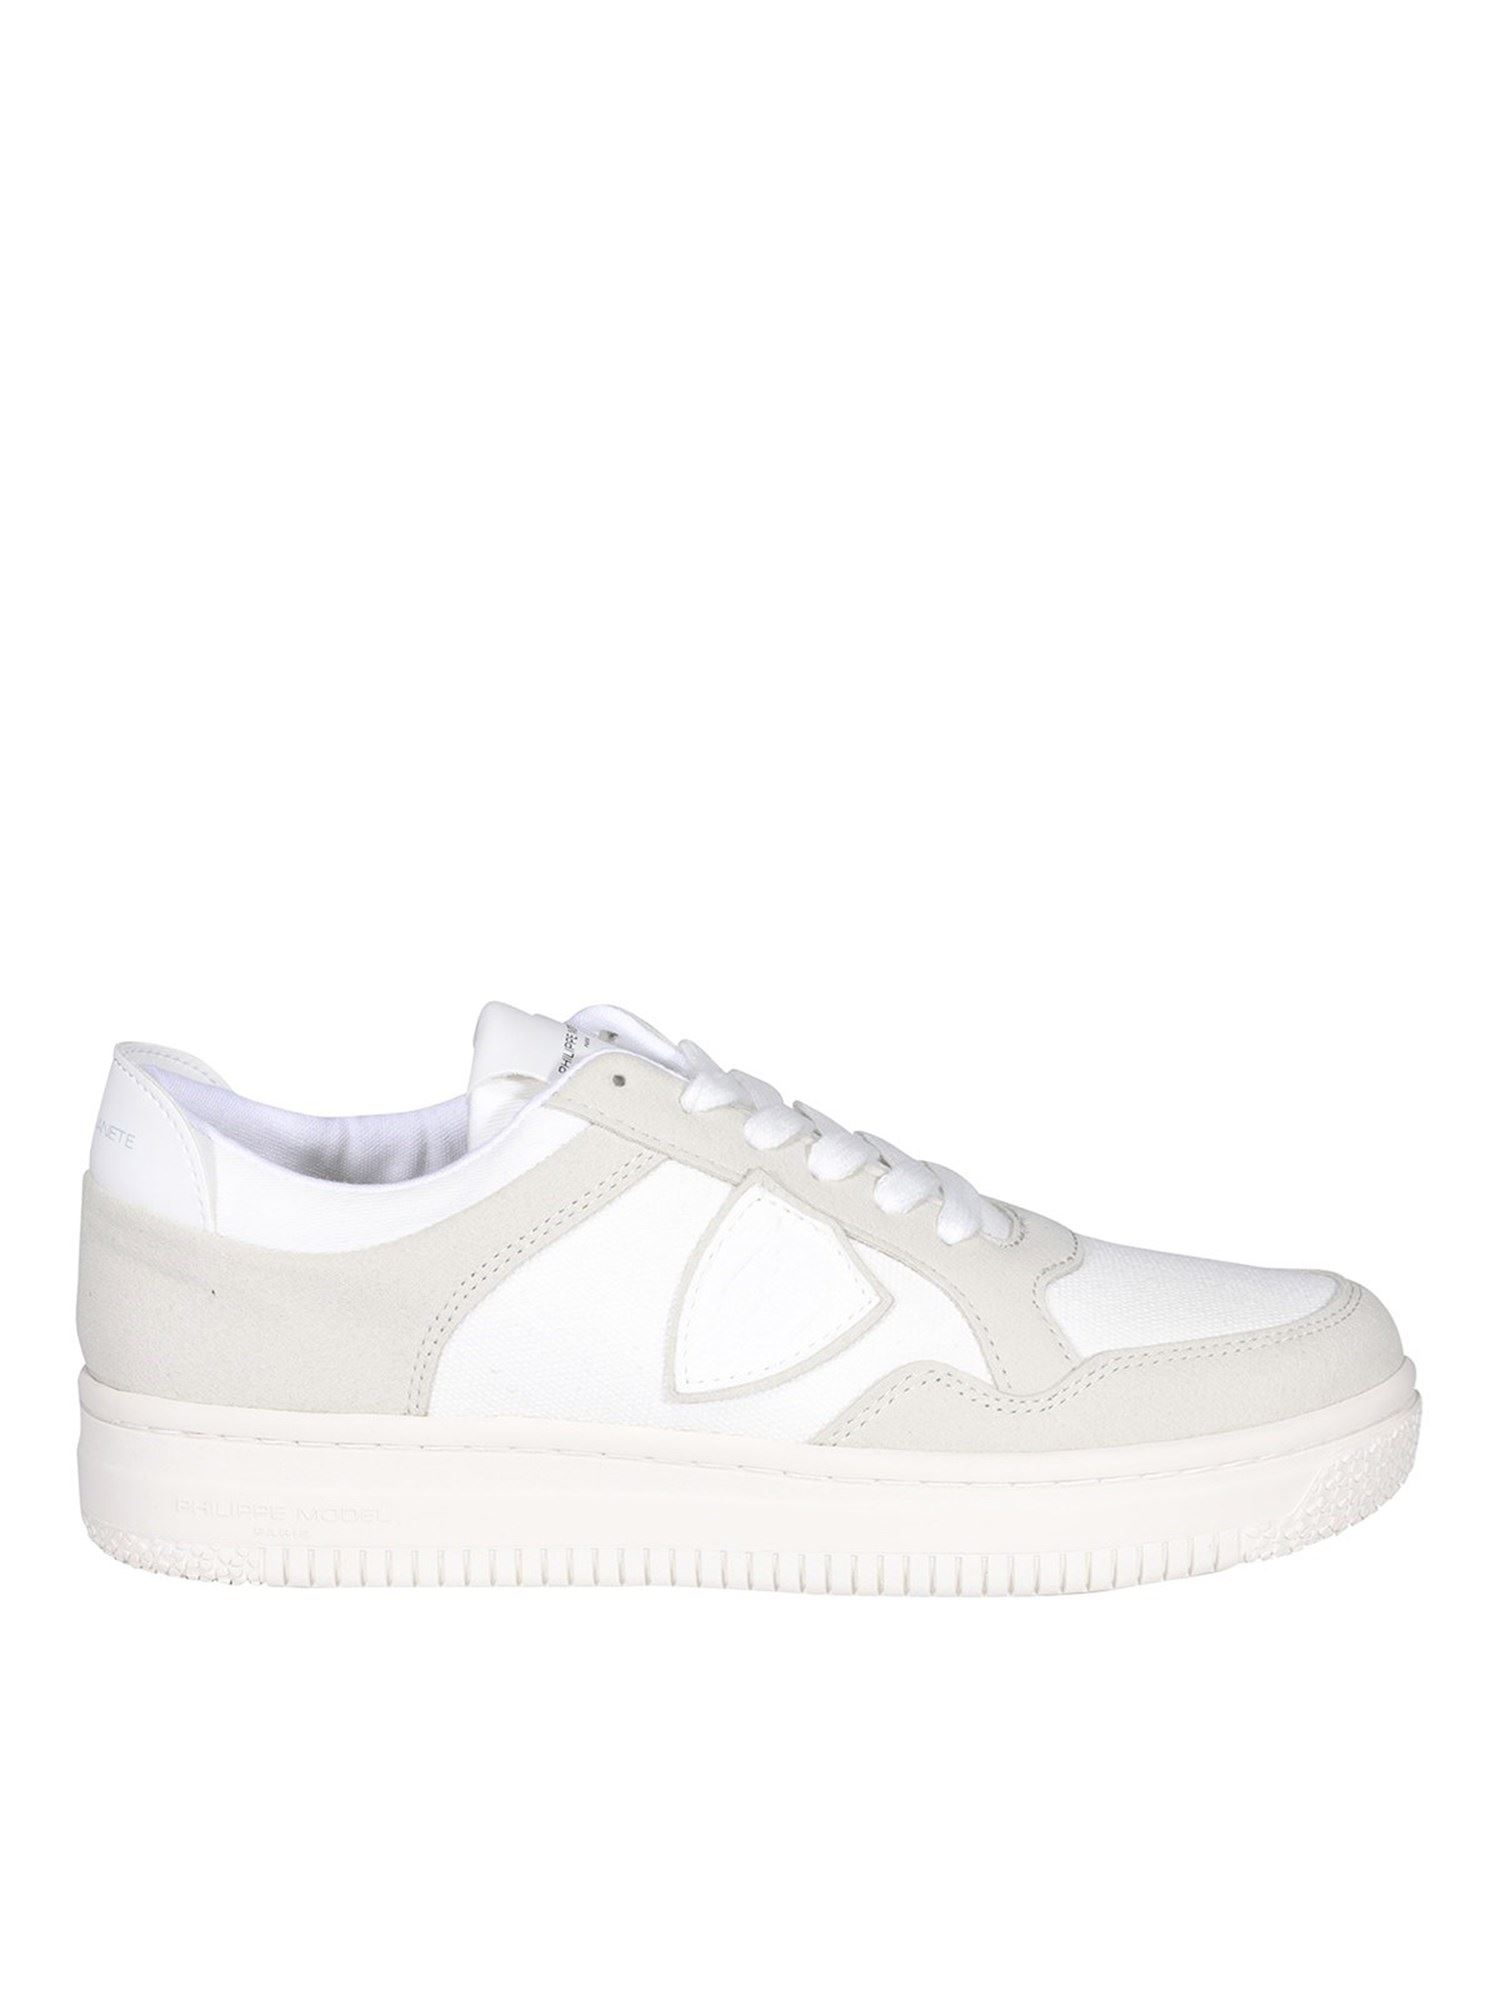 Philippe Model LYON SNEAKERS IN WHITE AND BEIGE